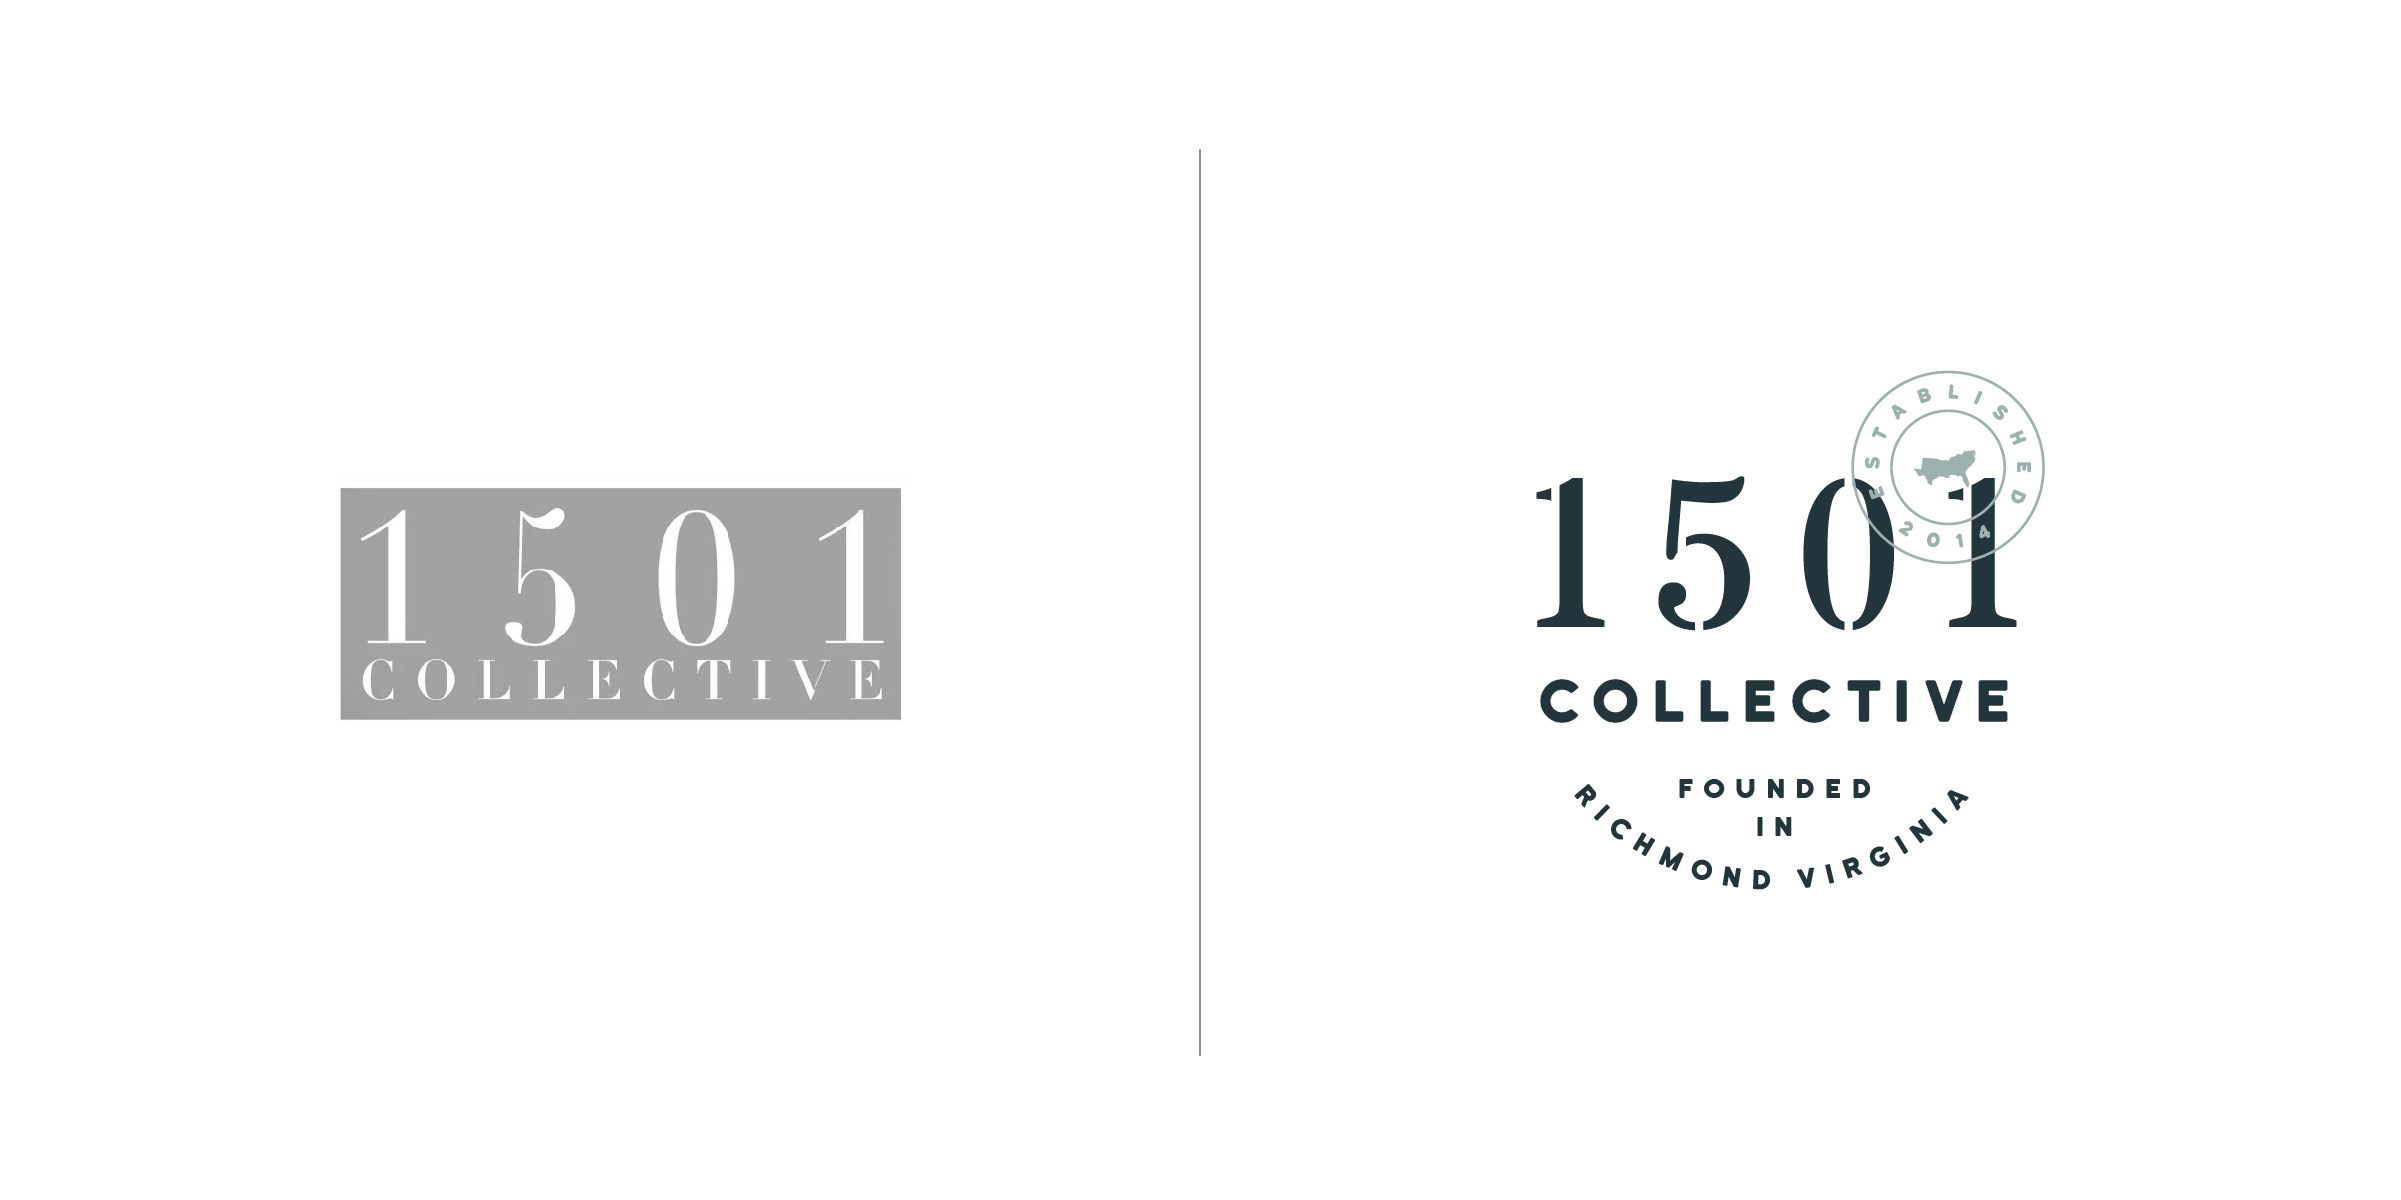 The client —   1501 Collective is a family run craft beverage business in Richmond, Virginia.  The goal — The 1501 Collective logo needed to pay tribute to their beverage making heritage while firmly setting foot in the present. We worked on pairing a stencil style font historically used by coopers (barrel makers back in the day) and perfectly matched it was a modern san serif font to update the design. We thrive on projects like this that strike the perfect balance between classic design qualities of the past in a flexible logo identity system that works in the present.